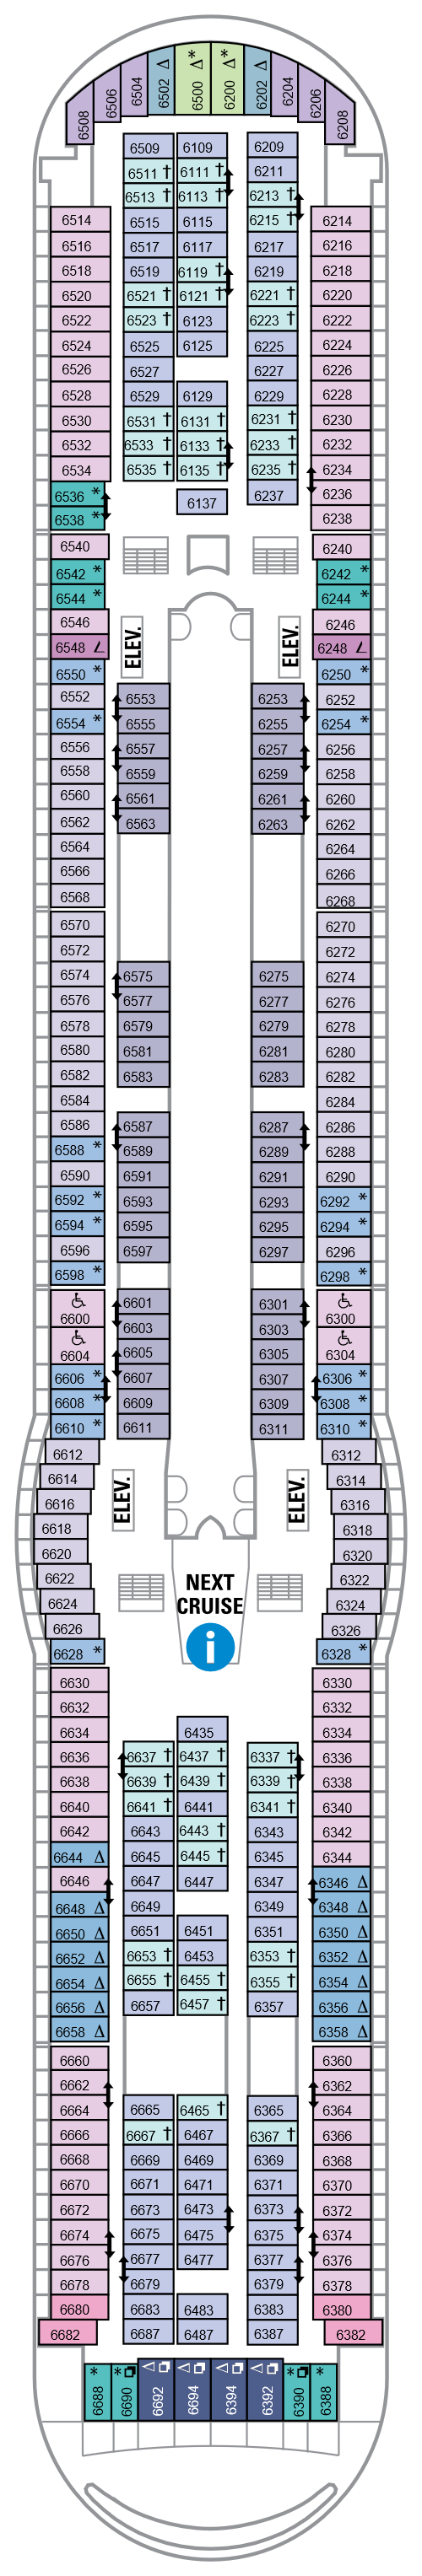 Navigator Of The Seas Deck 6 layout